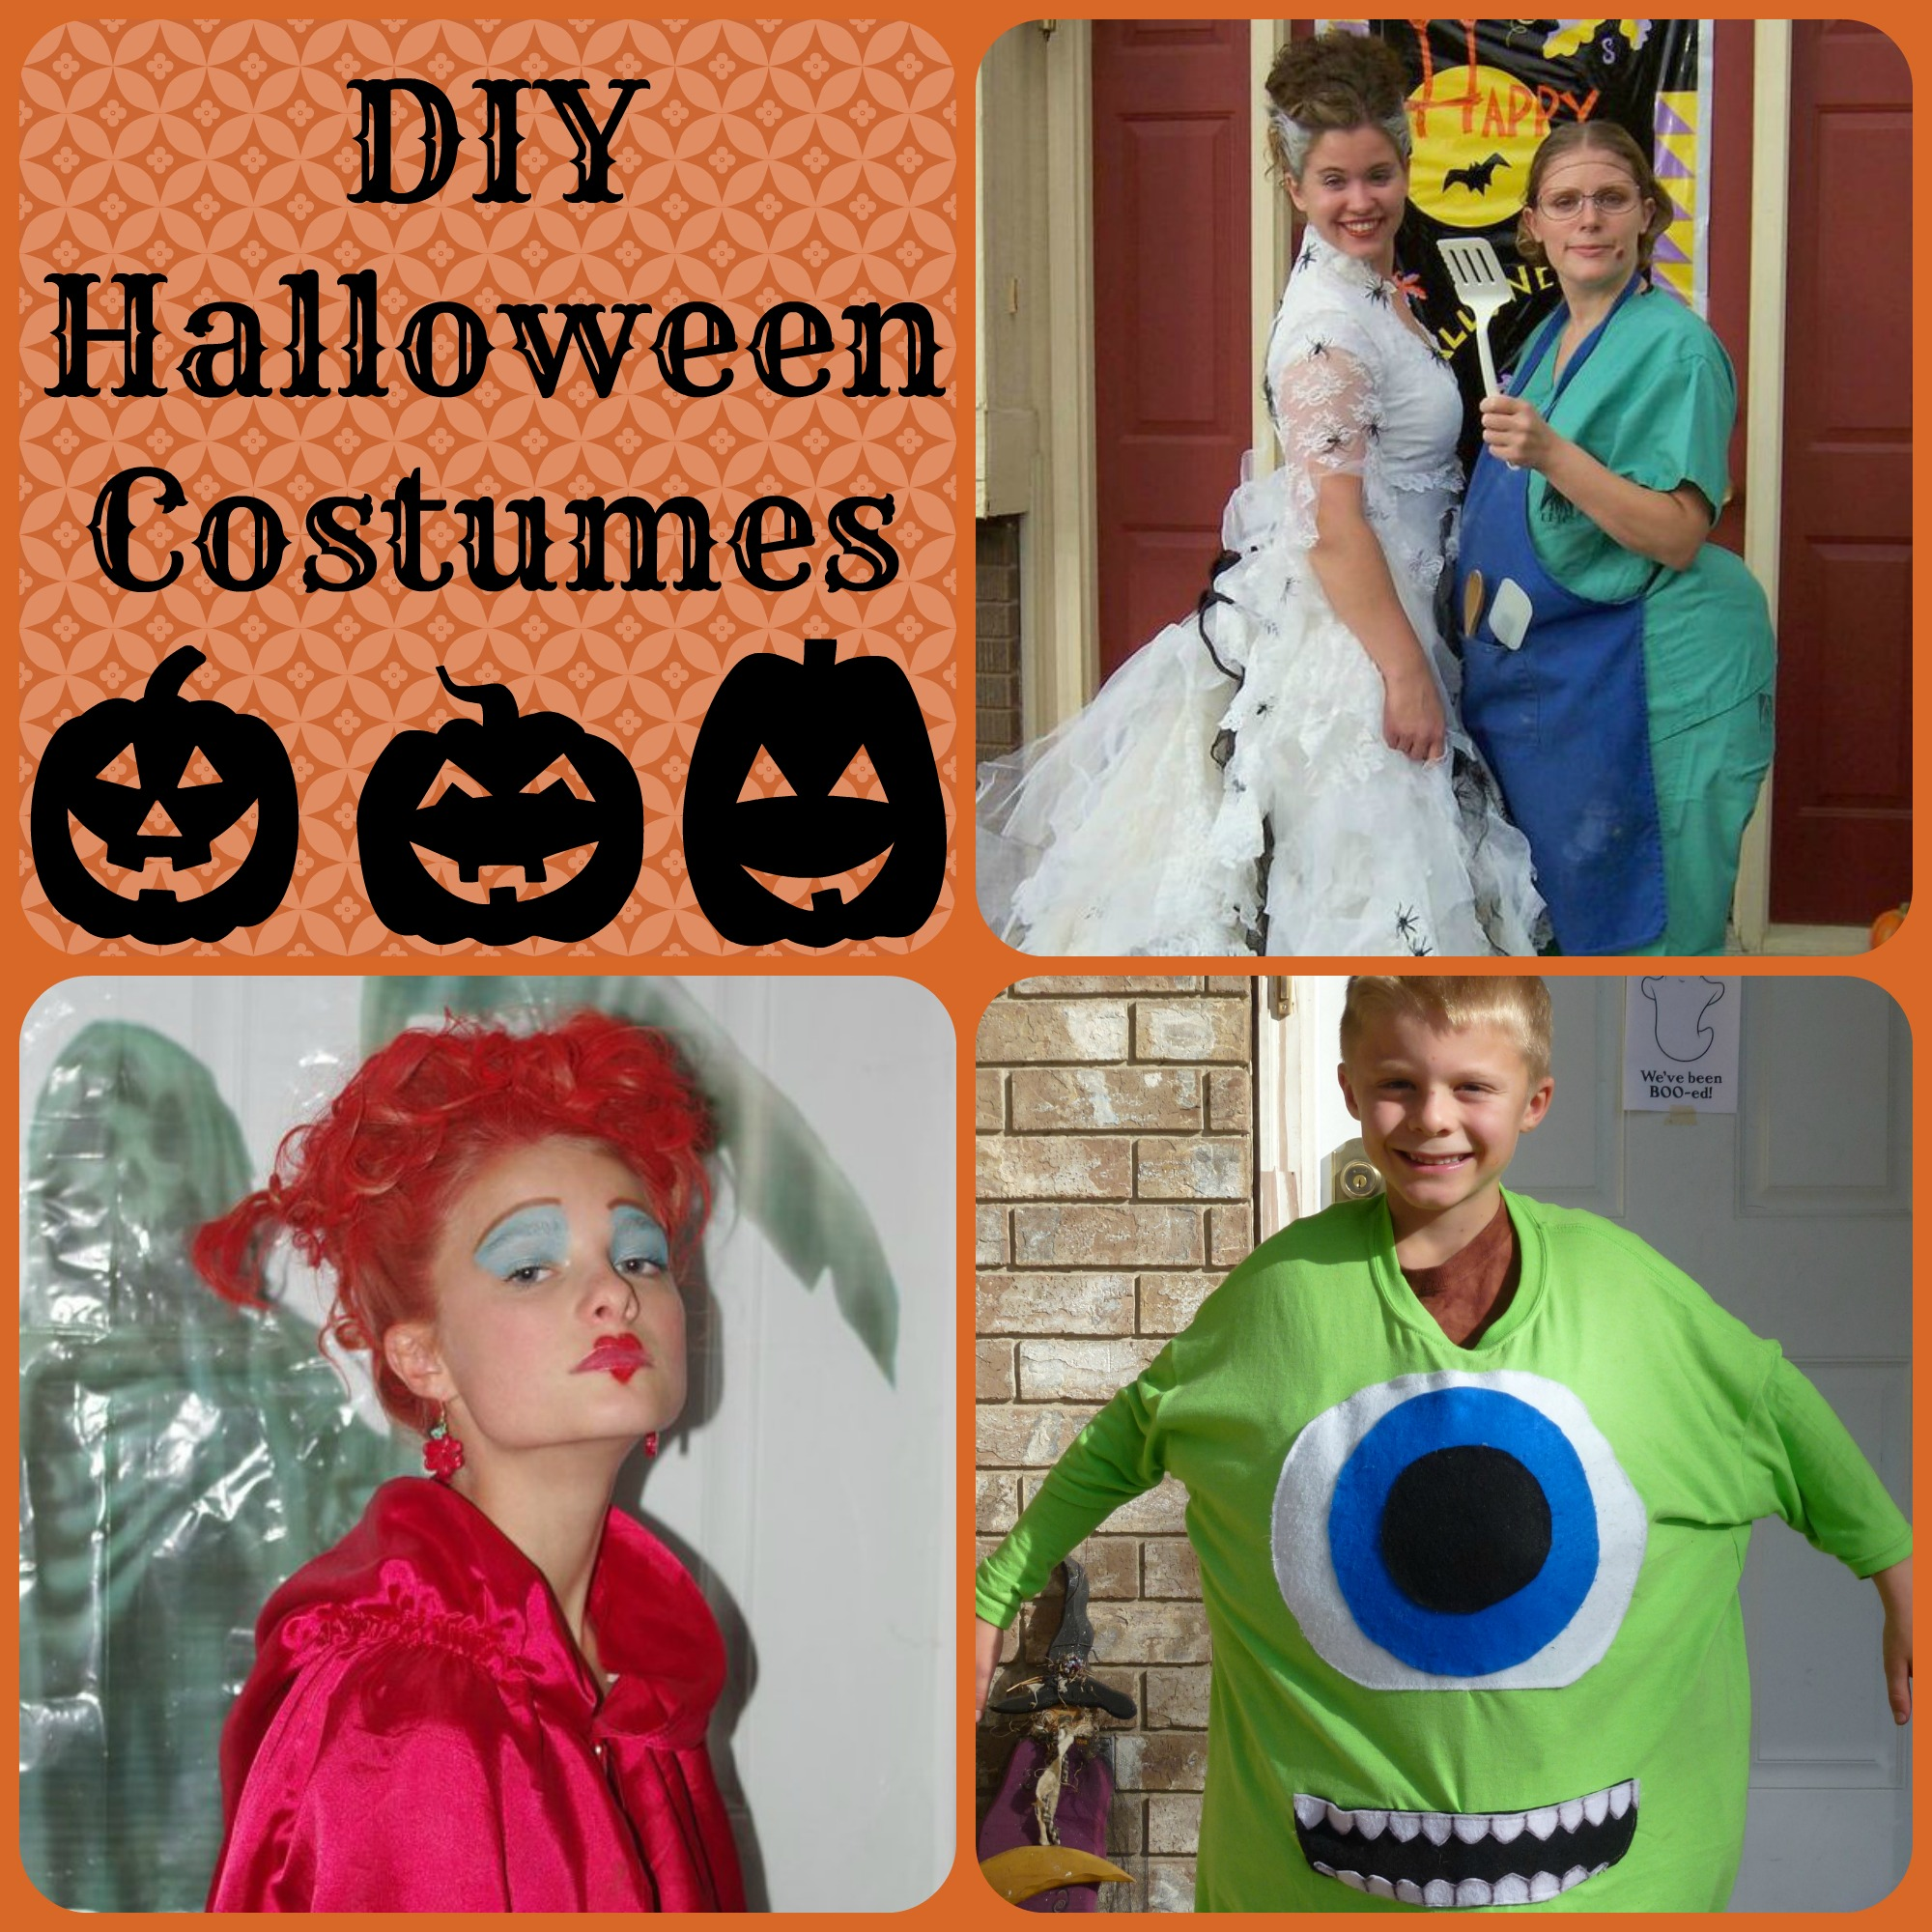 DIY Halloween Costumes  events to CELEBRATE! - Diy Halloween